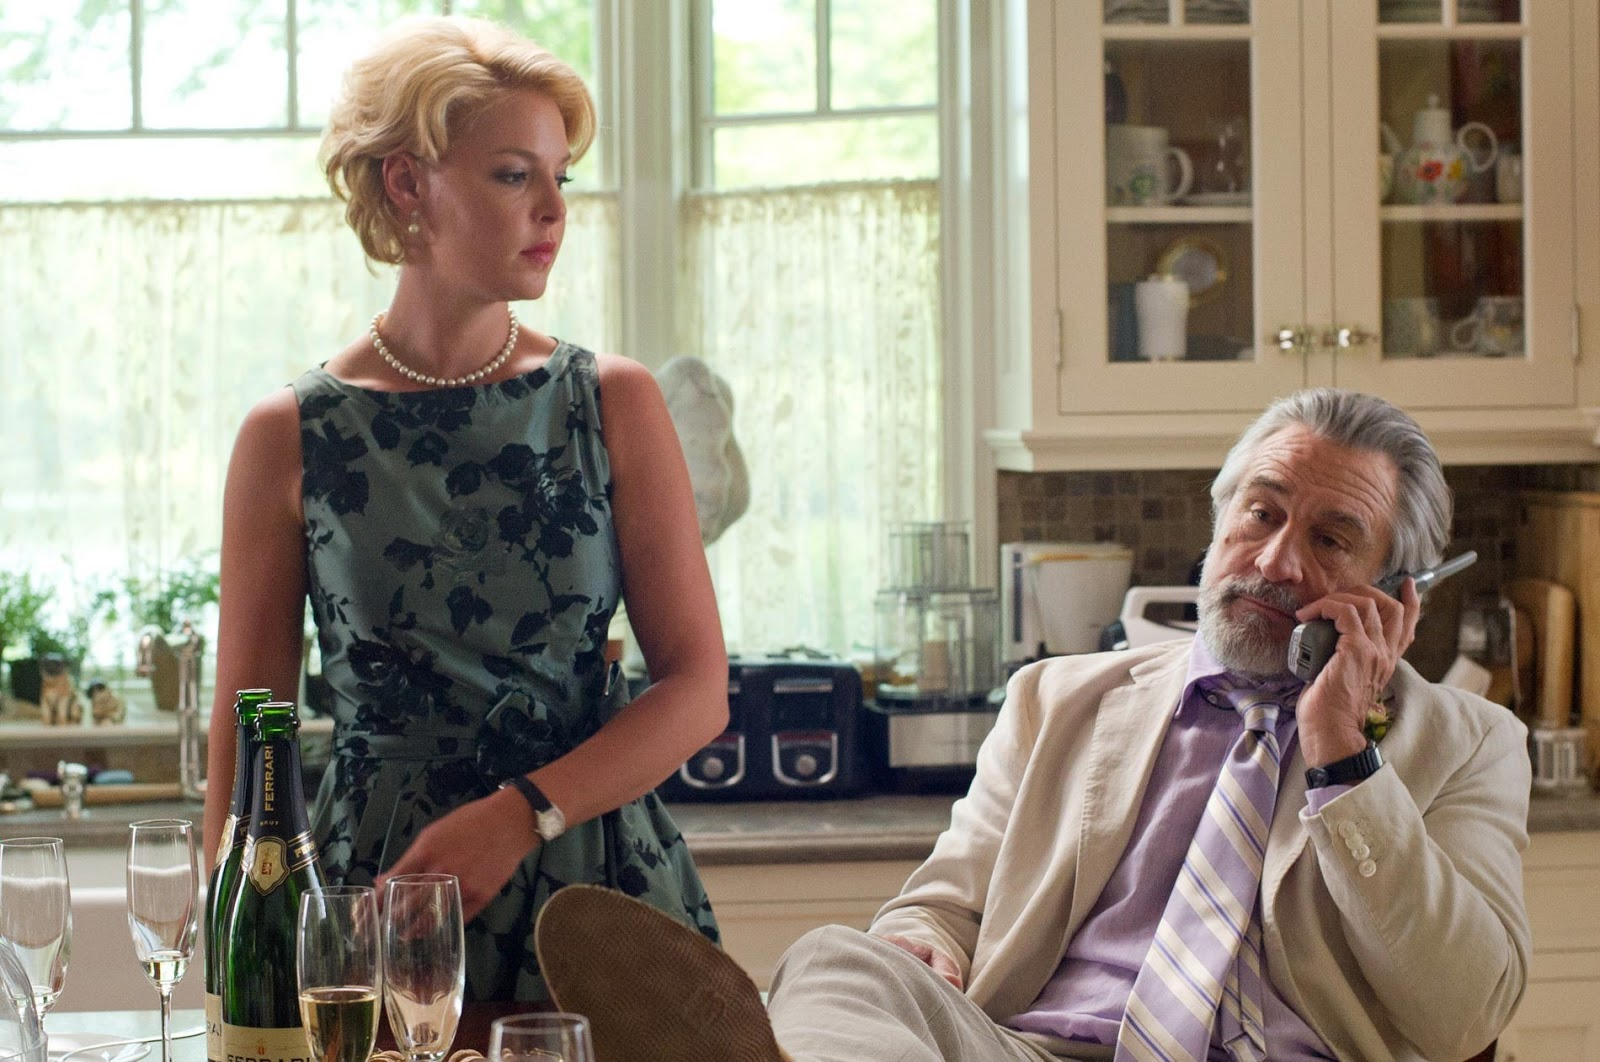 Amanda Seyfried Dr House win your tickets to see the big wedding in san francisco